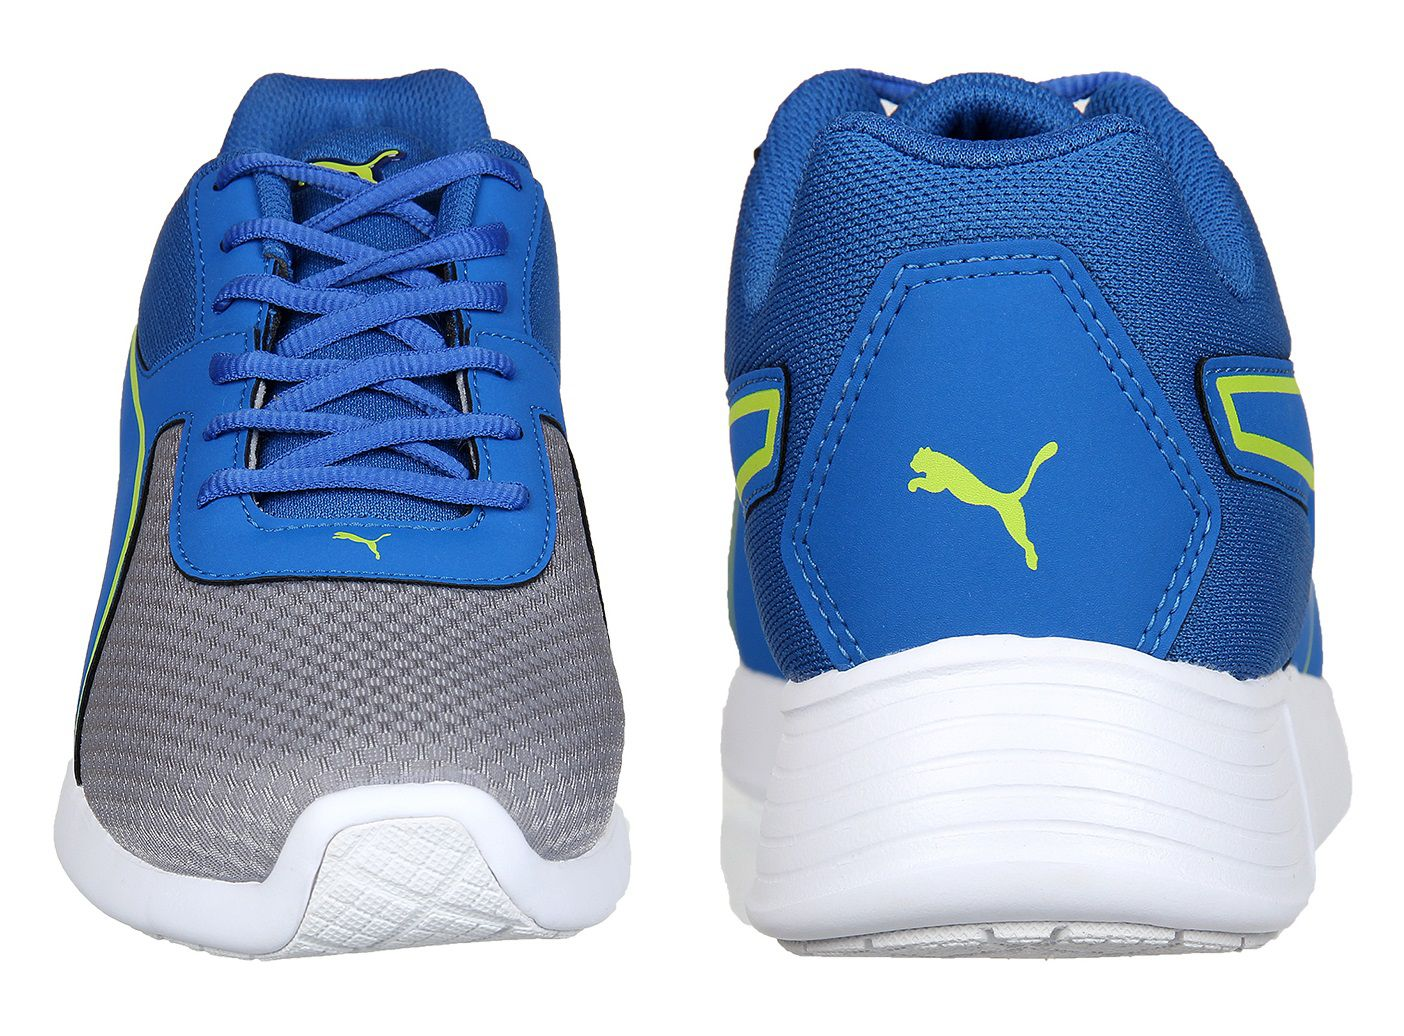 Puma Men Puma Kor IDP Blue Running Shoes - Buy Puma Men Puma Kor IDP Blue  Running Shoes Online at Best Prices in India on Snapdeal 2b2f1c0d3